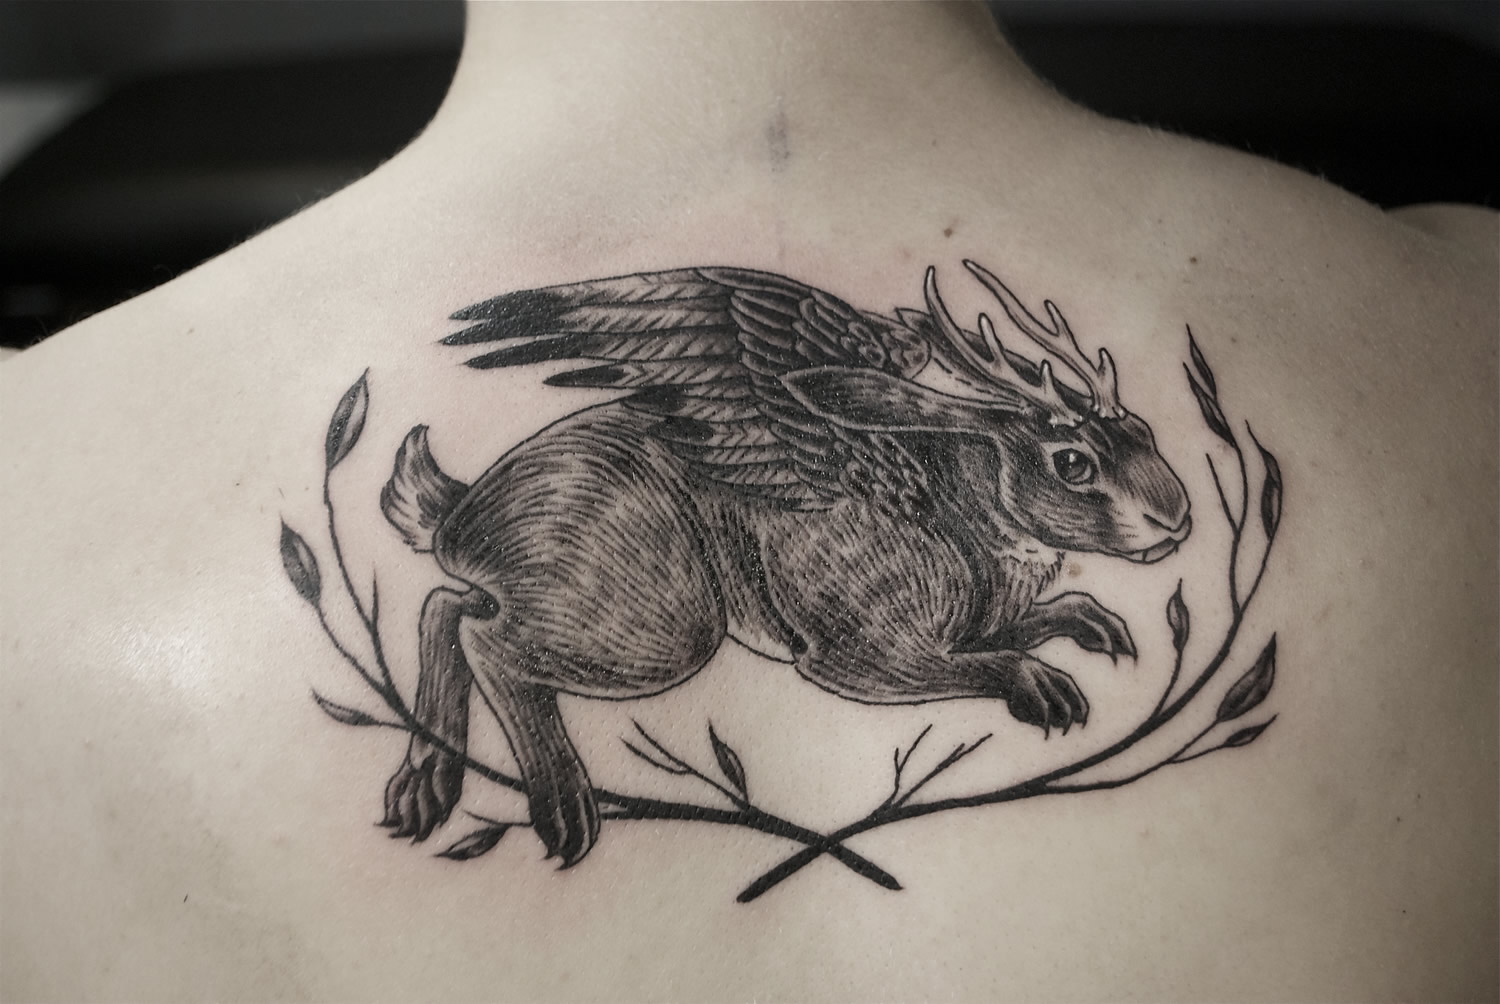 rabbit with wing tattoo by Alison Woodward